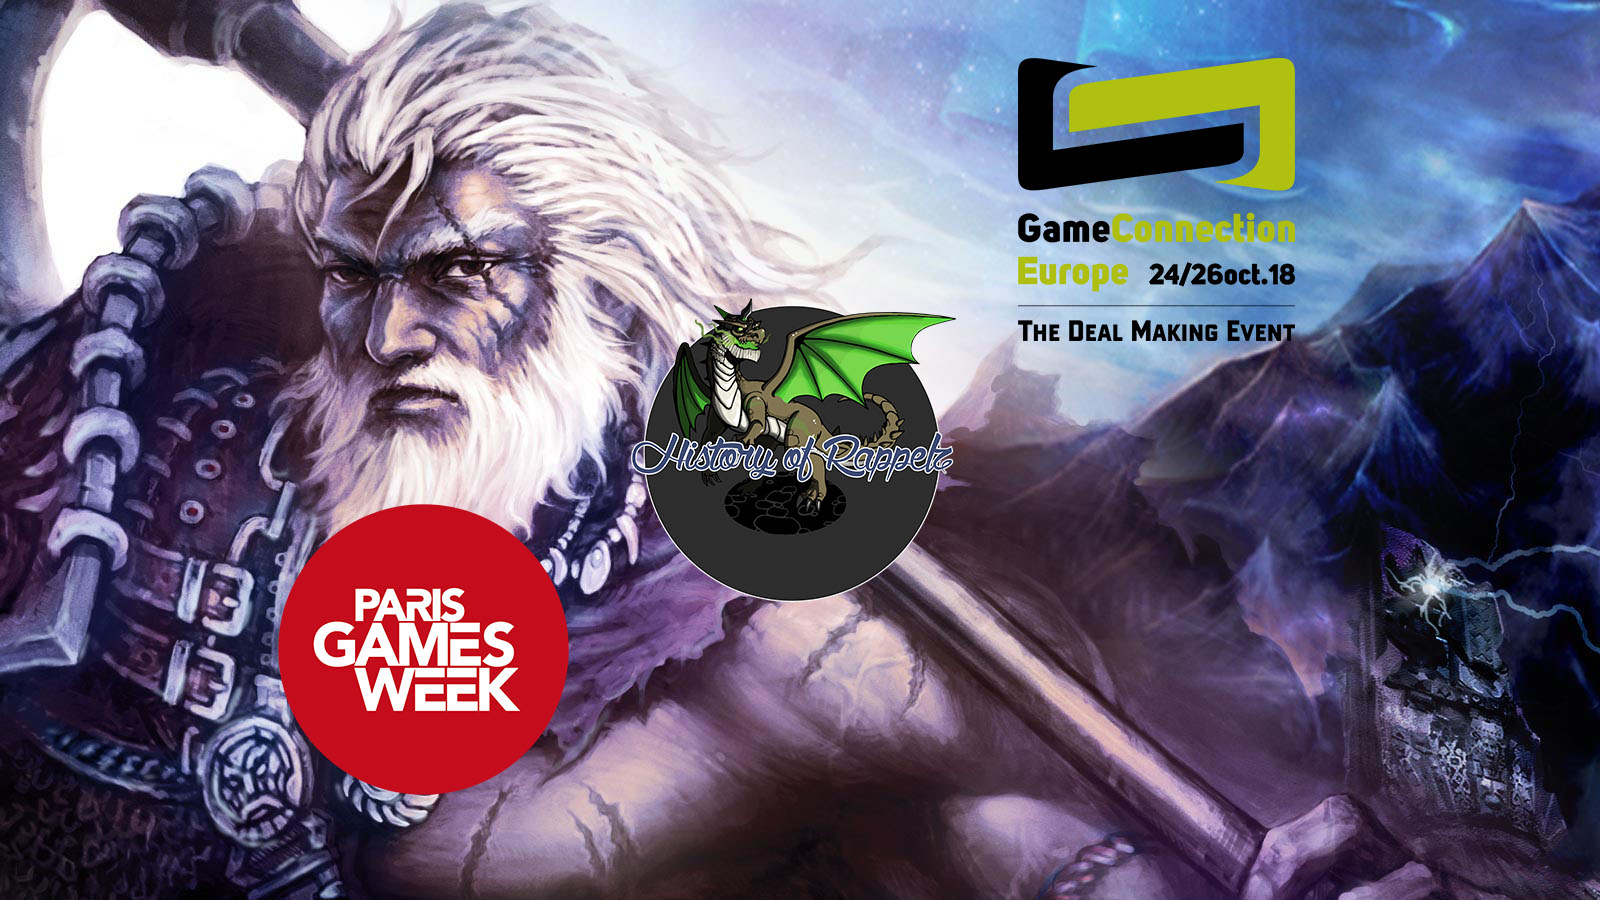 Paris Games Week And Game Connection Europe 2018 Introduction